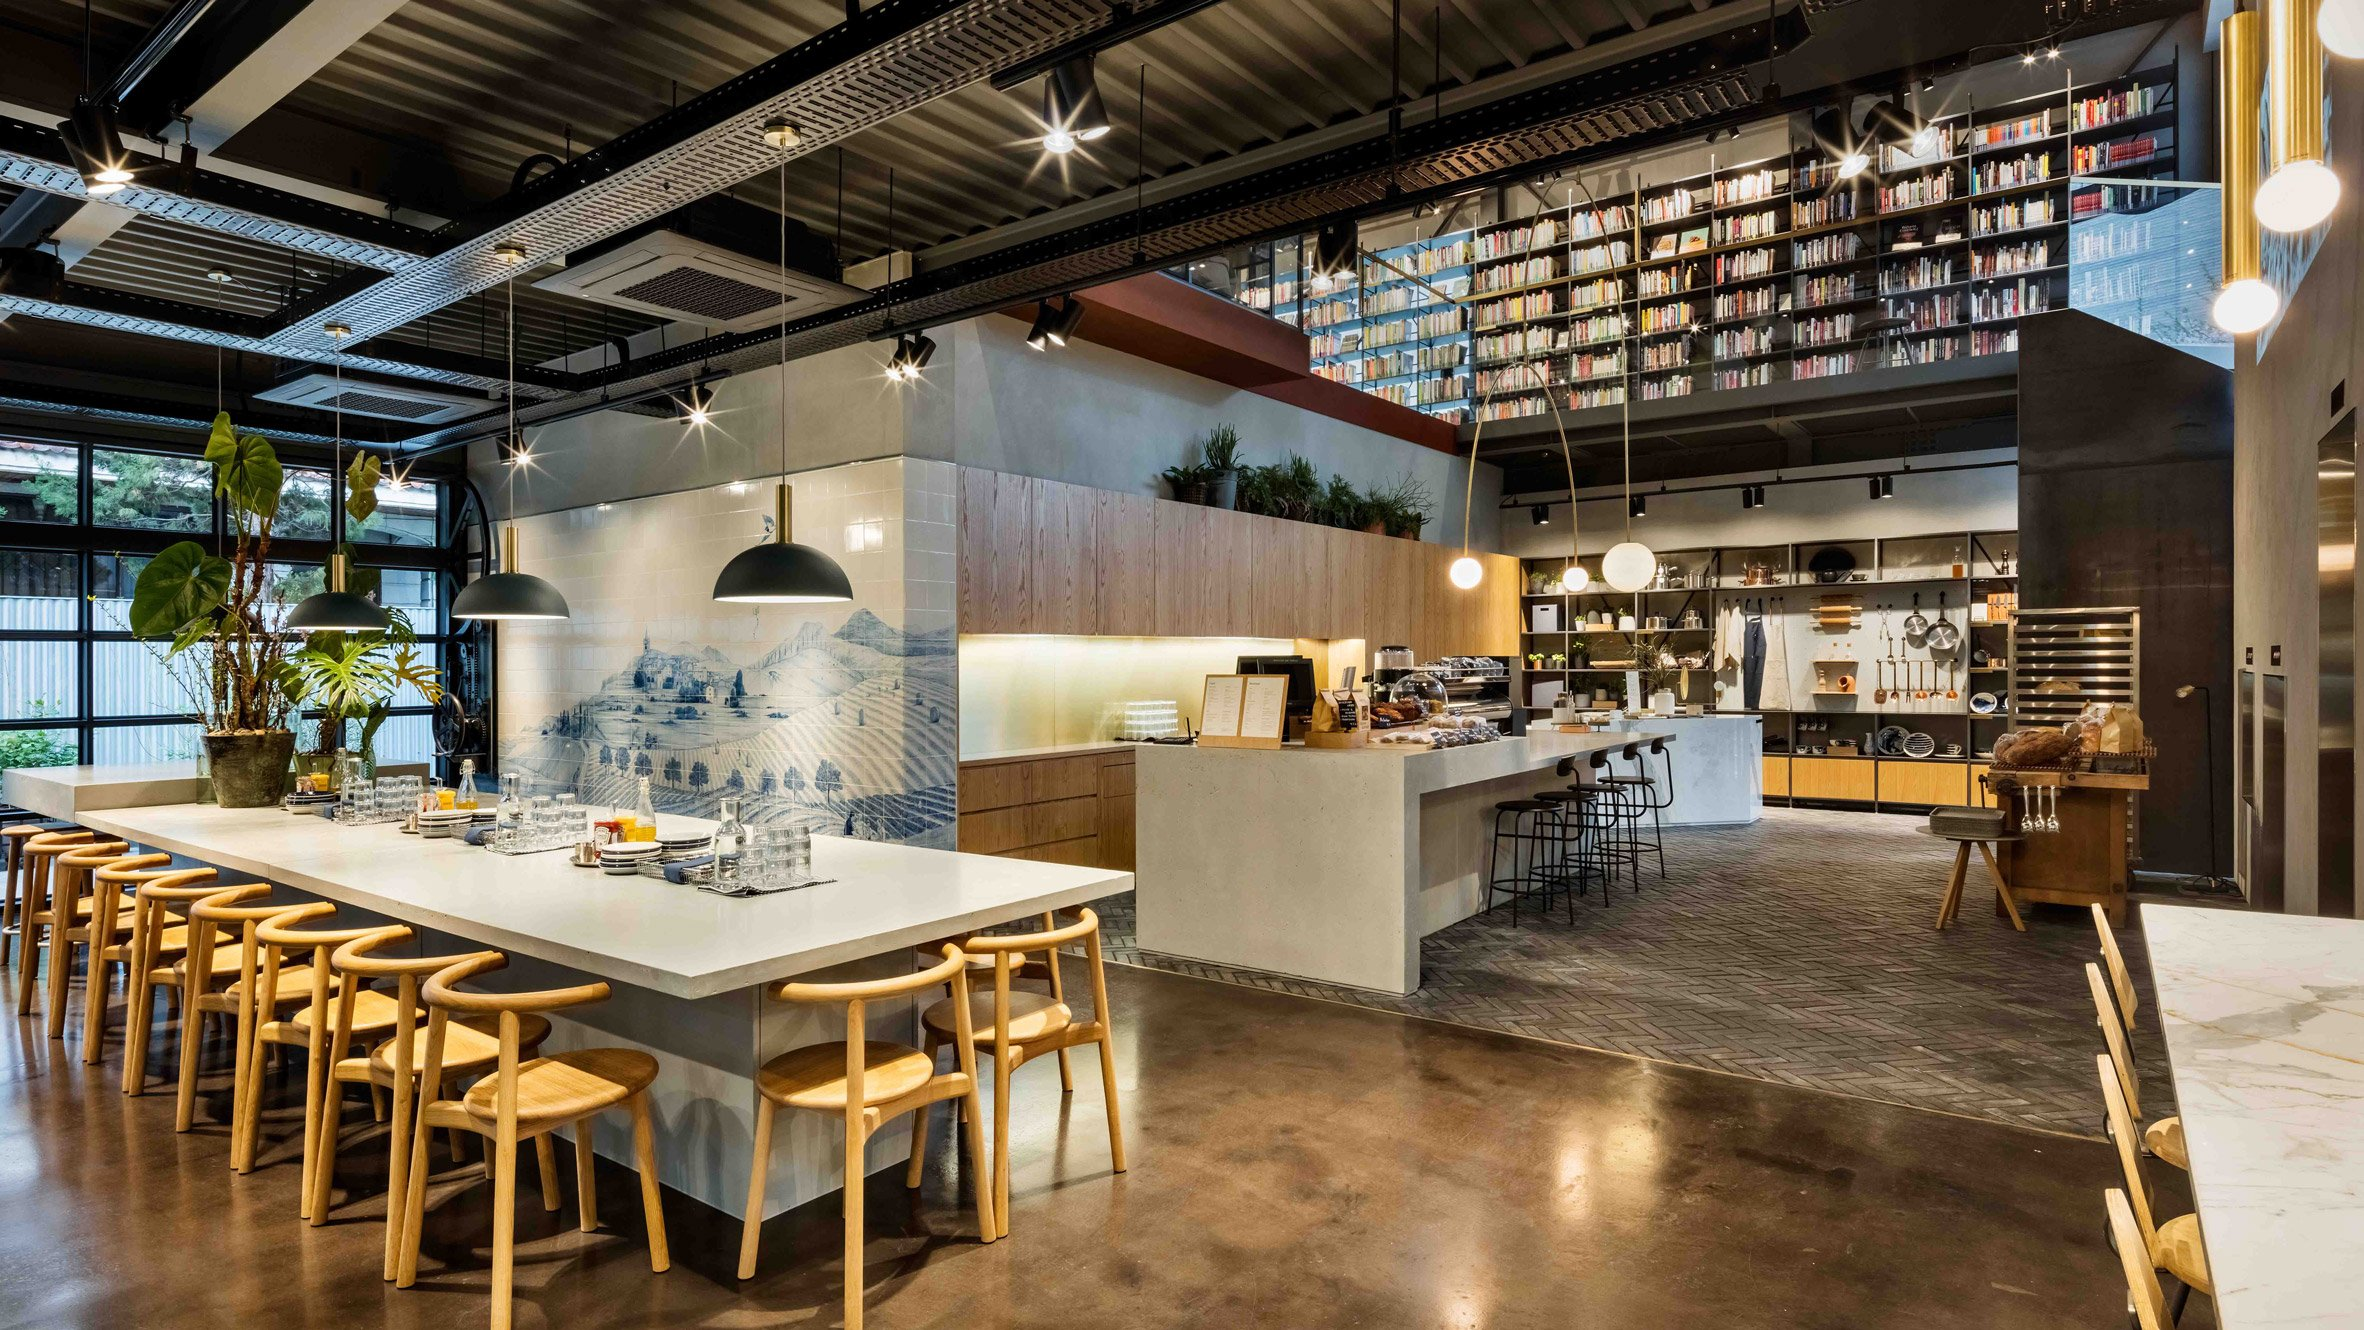 blacksheep bases experiential cooking library in seoul on european